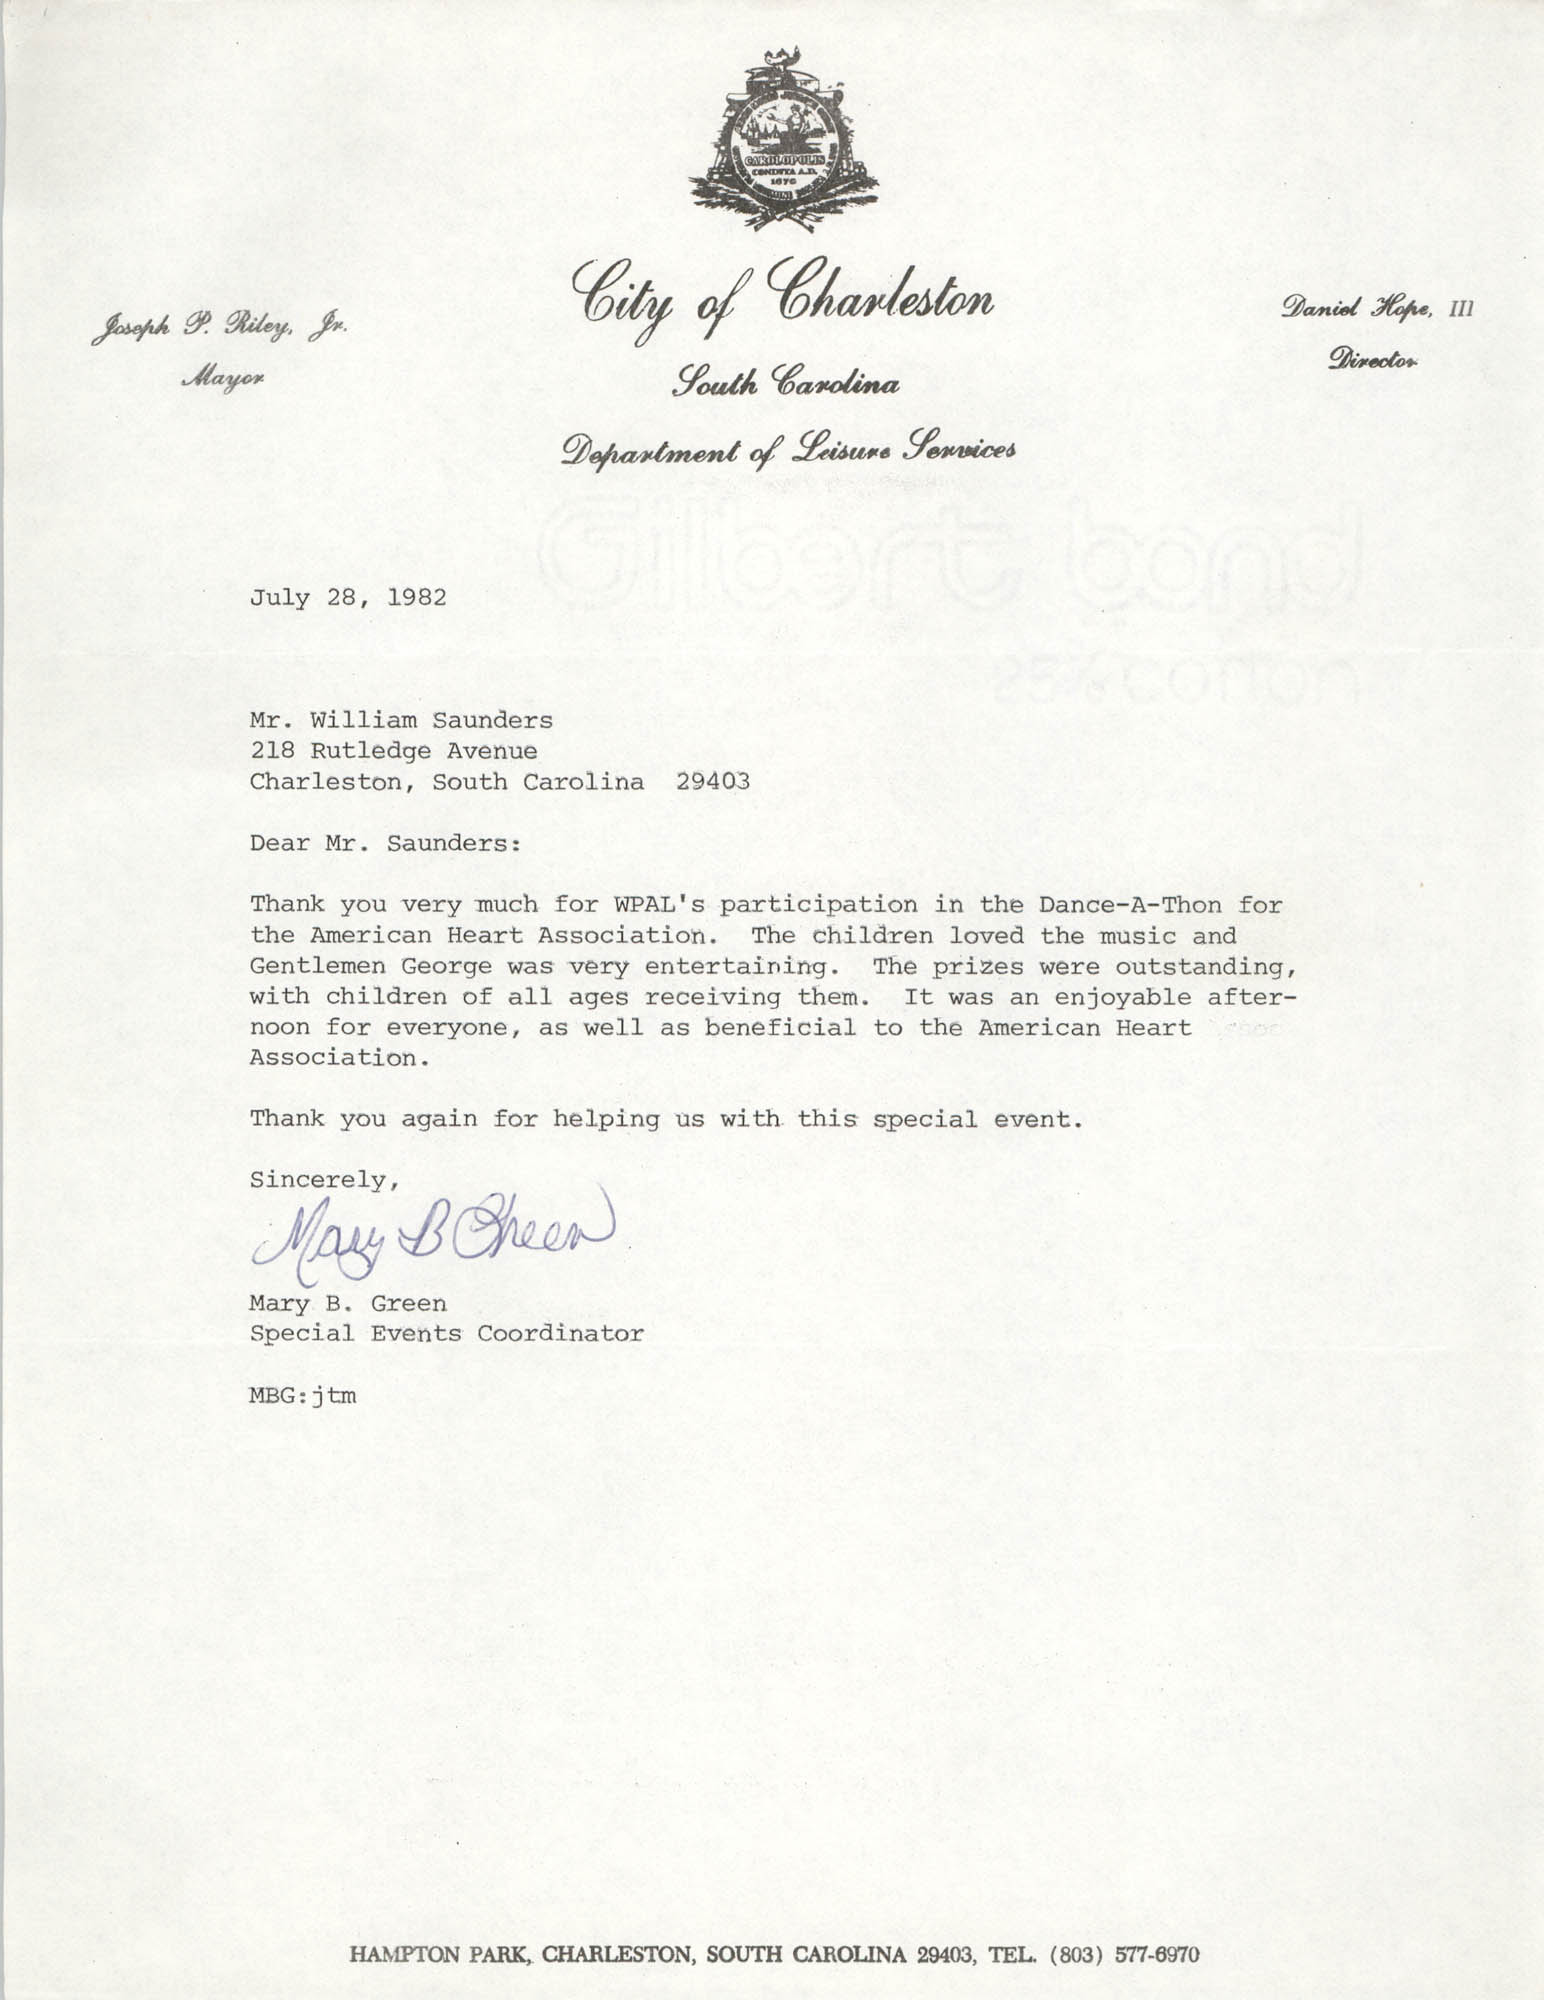 Letter from Mary B. Green to William Saunders, July 28, 1982